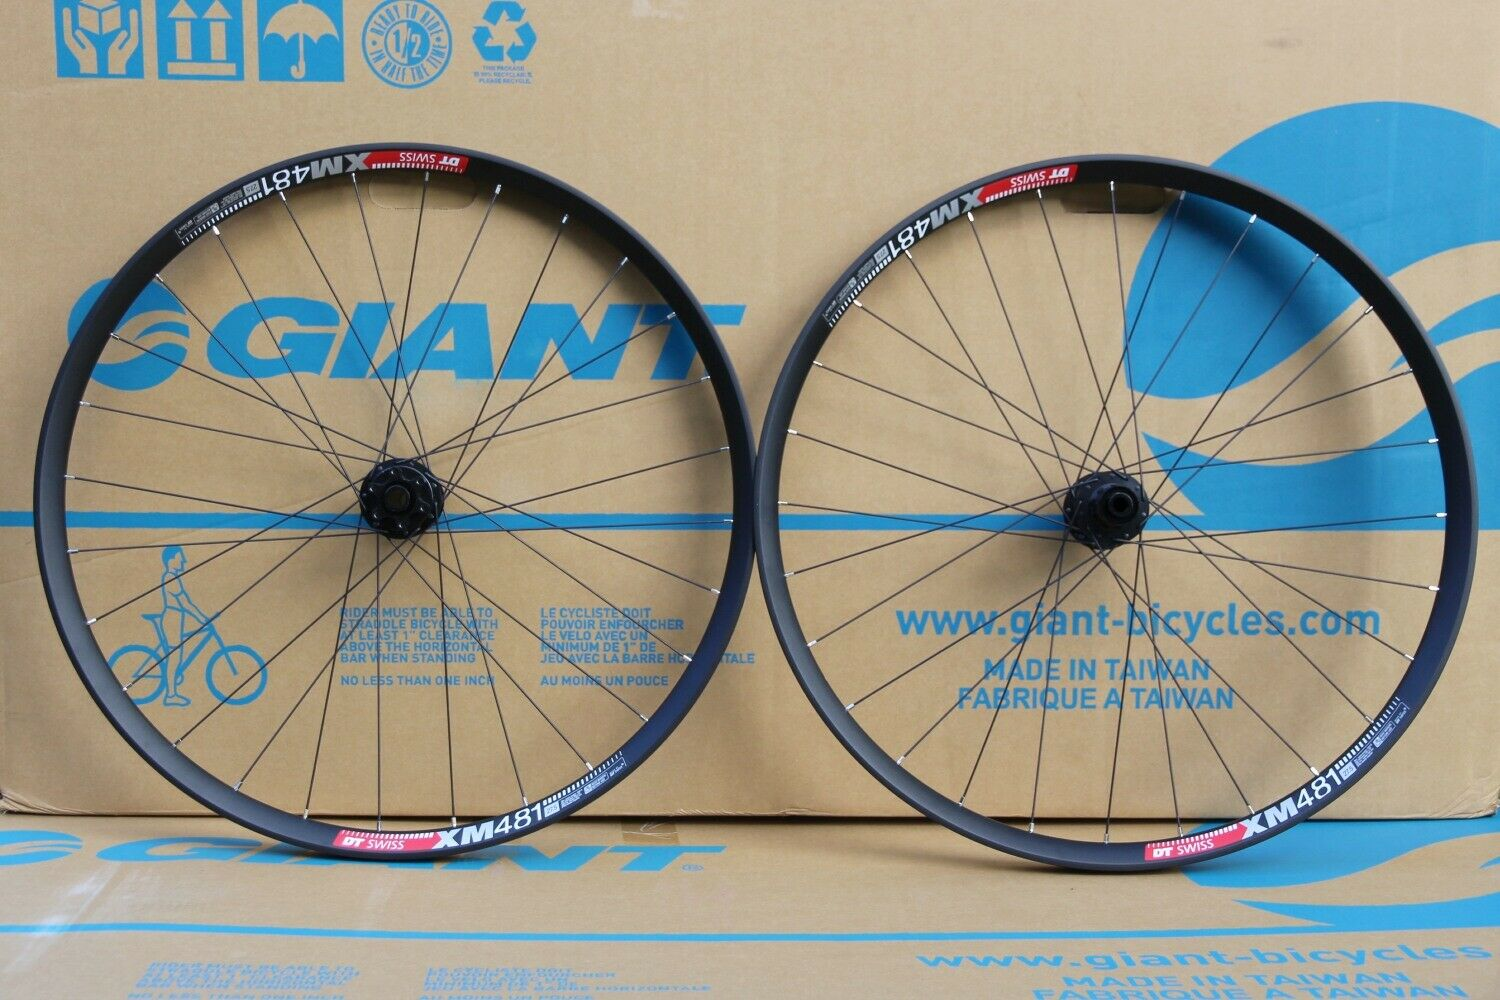 NEW - 2019 DT Swiss XM 481 Wheelset, 27.5   - Front   Rear Disc Tubeless  hot sale online